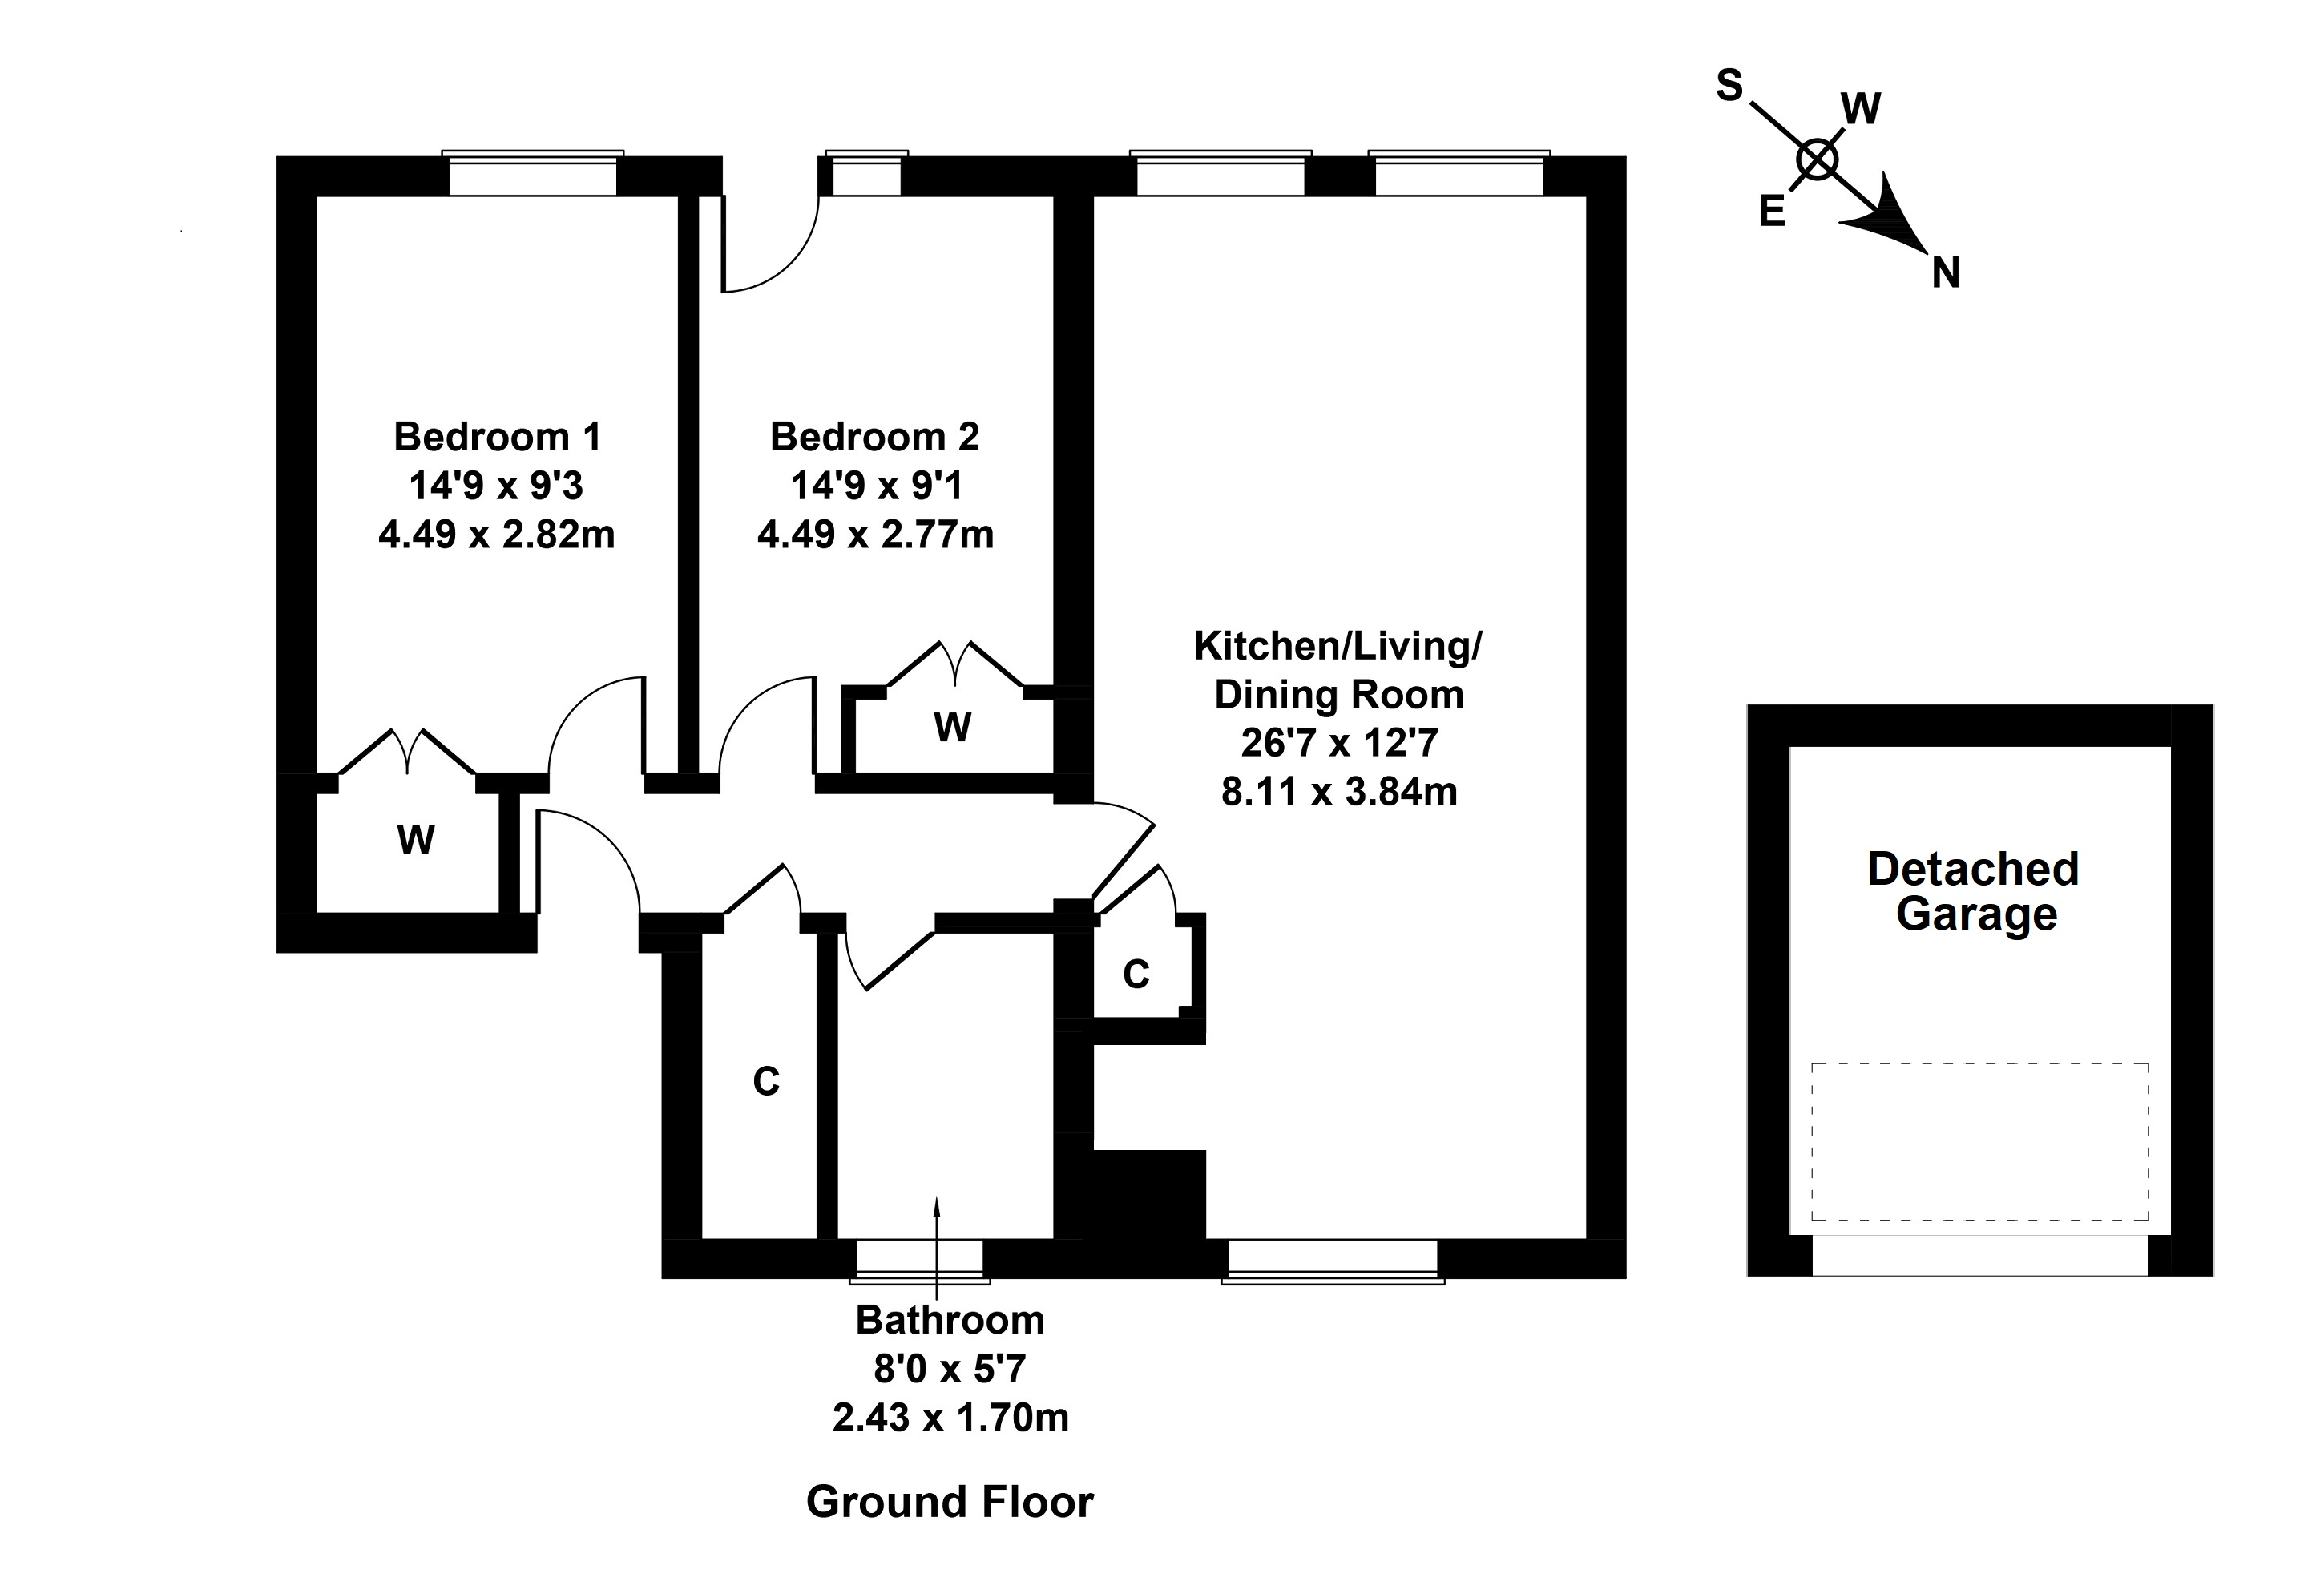 Floorplan 1 of 9/1, Blackie Road, Leith Links, Edinburgh, EH6 7NA